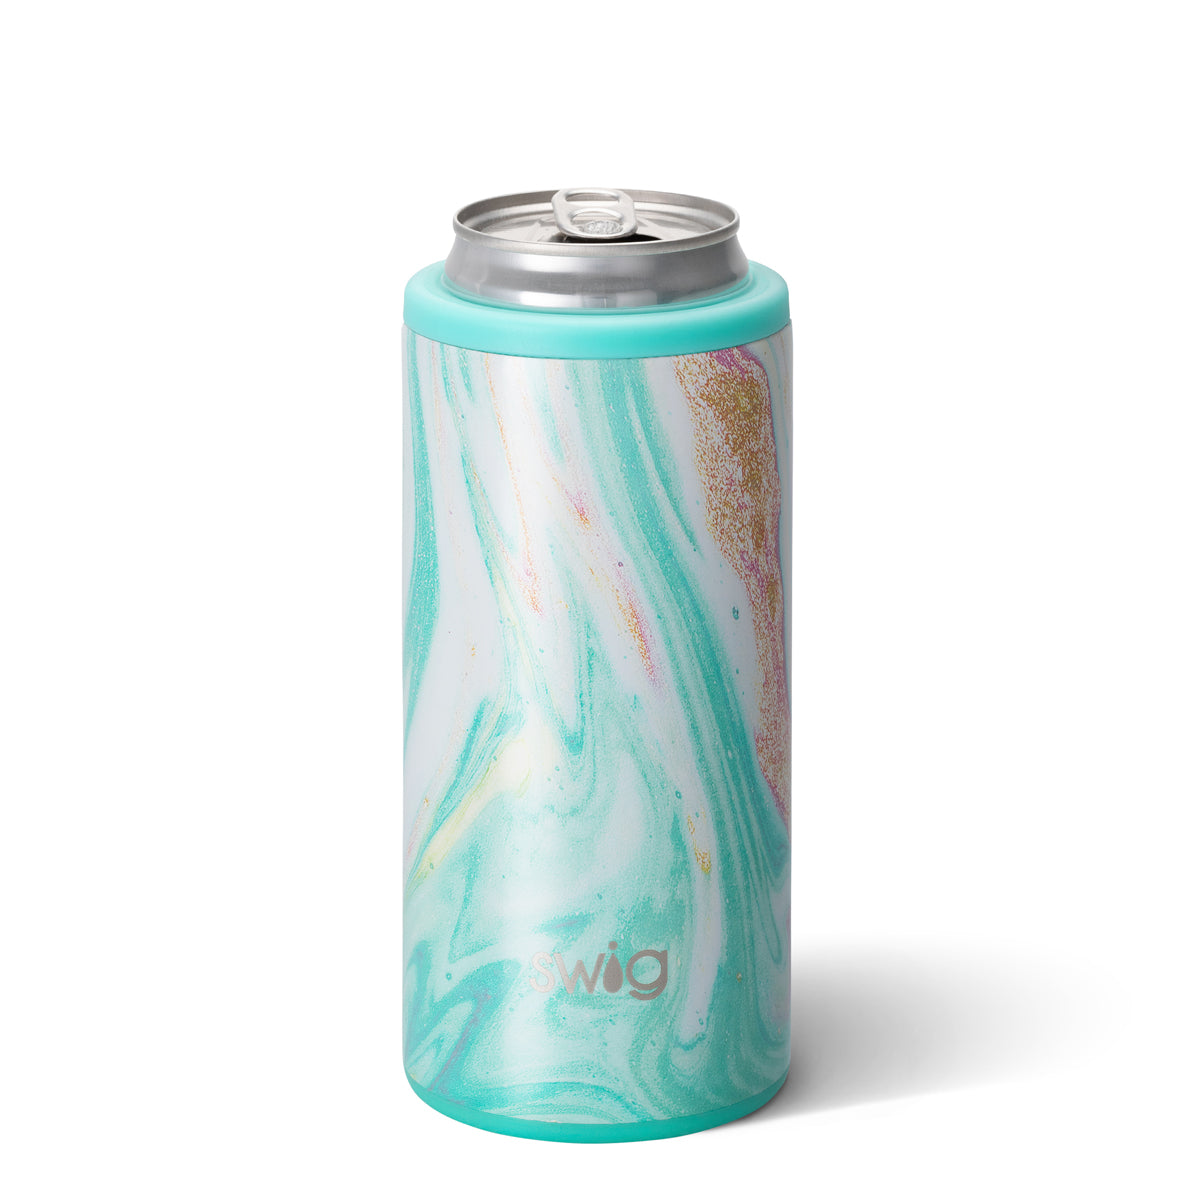 Swig 12 oz. Skinny Can Cooler, Wanderlust Design